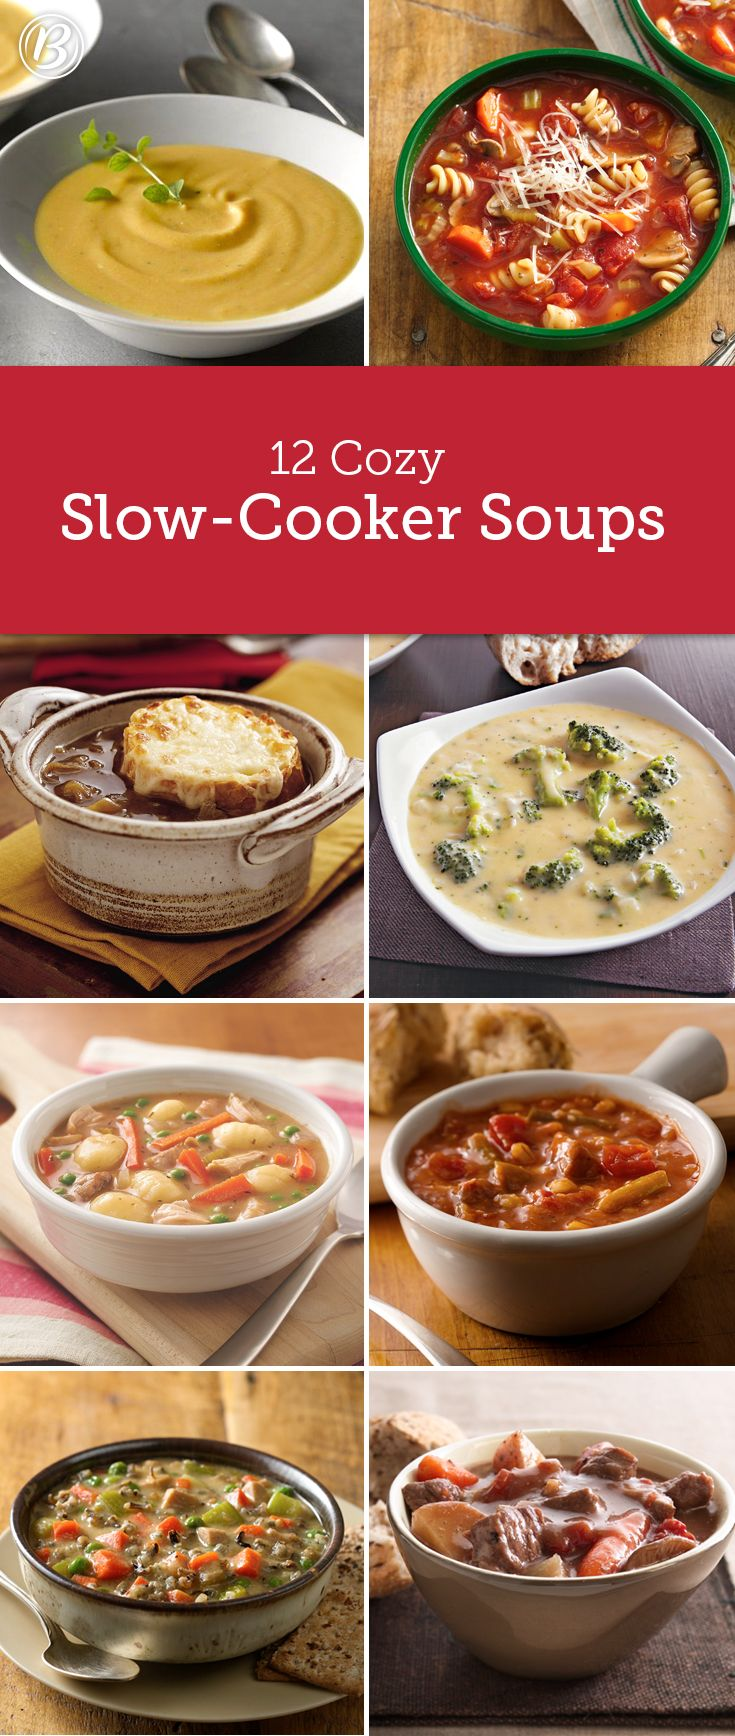 Cozy up with 12 slow-cooker soups that will warm you up from head-to-toe.